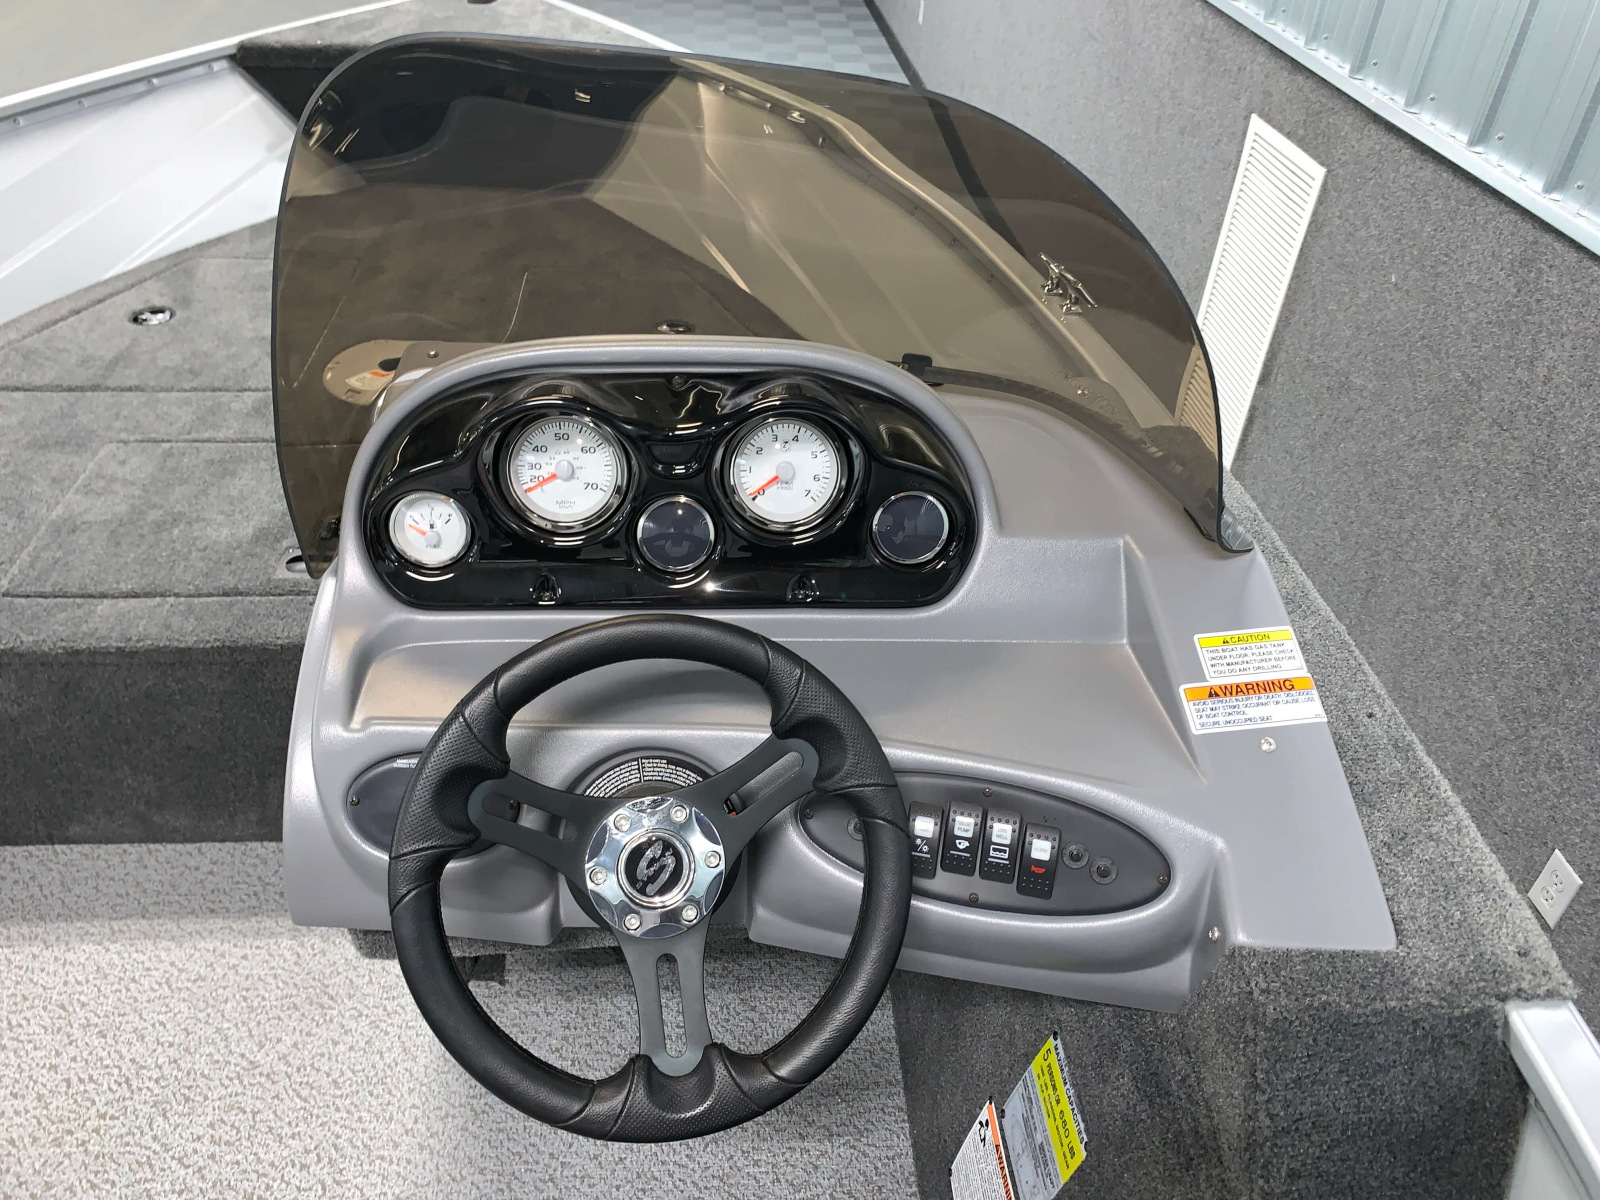 Helm of the 2022 Smoker Craft Pro Angler Fishing Boat